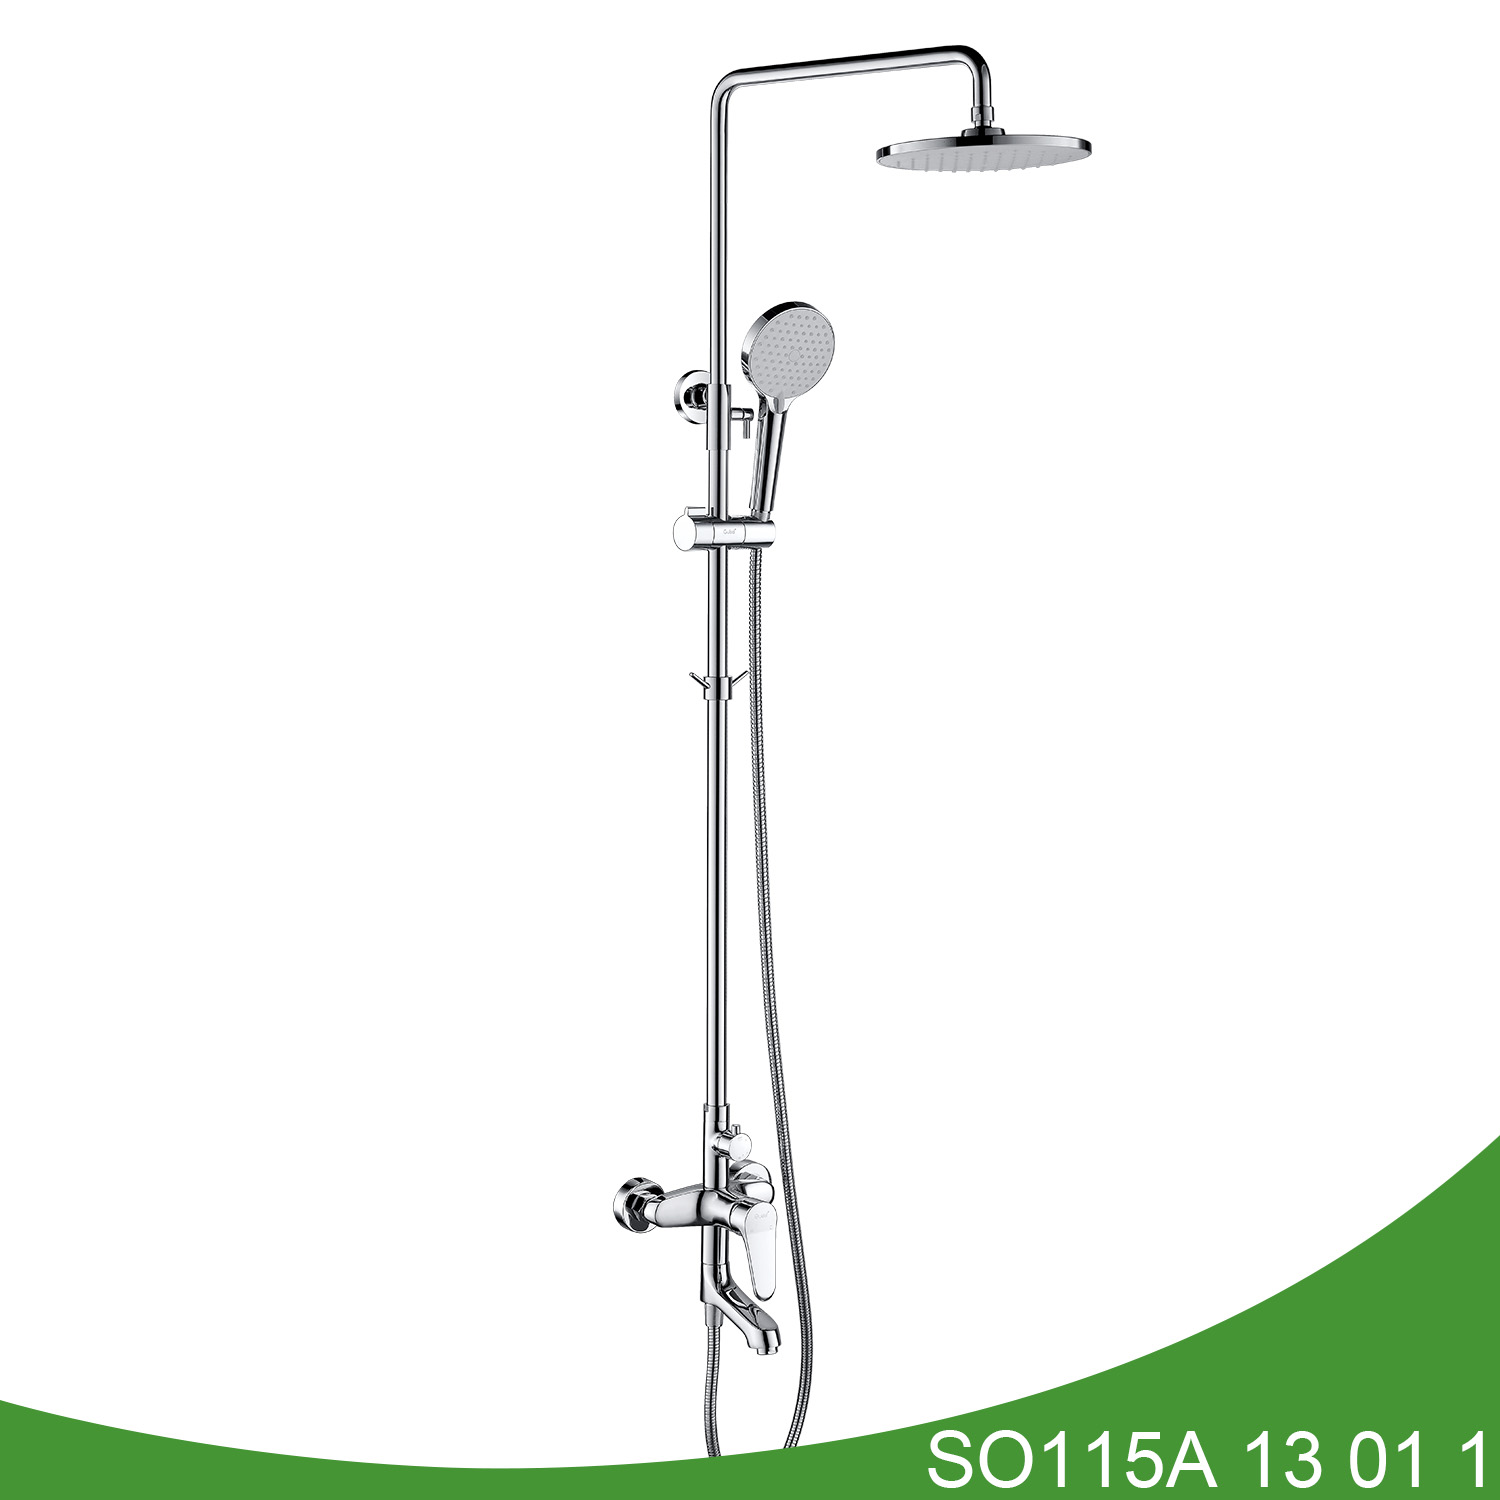 Exposed shower set SO115A 13 01 1